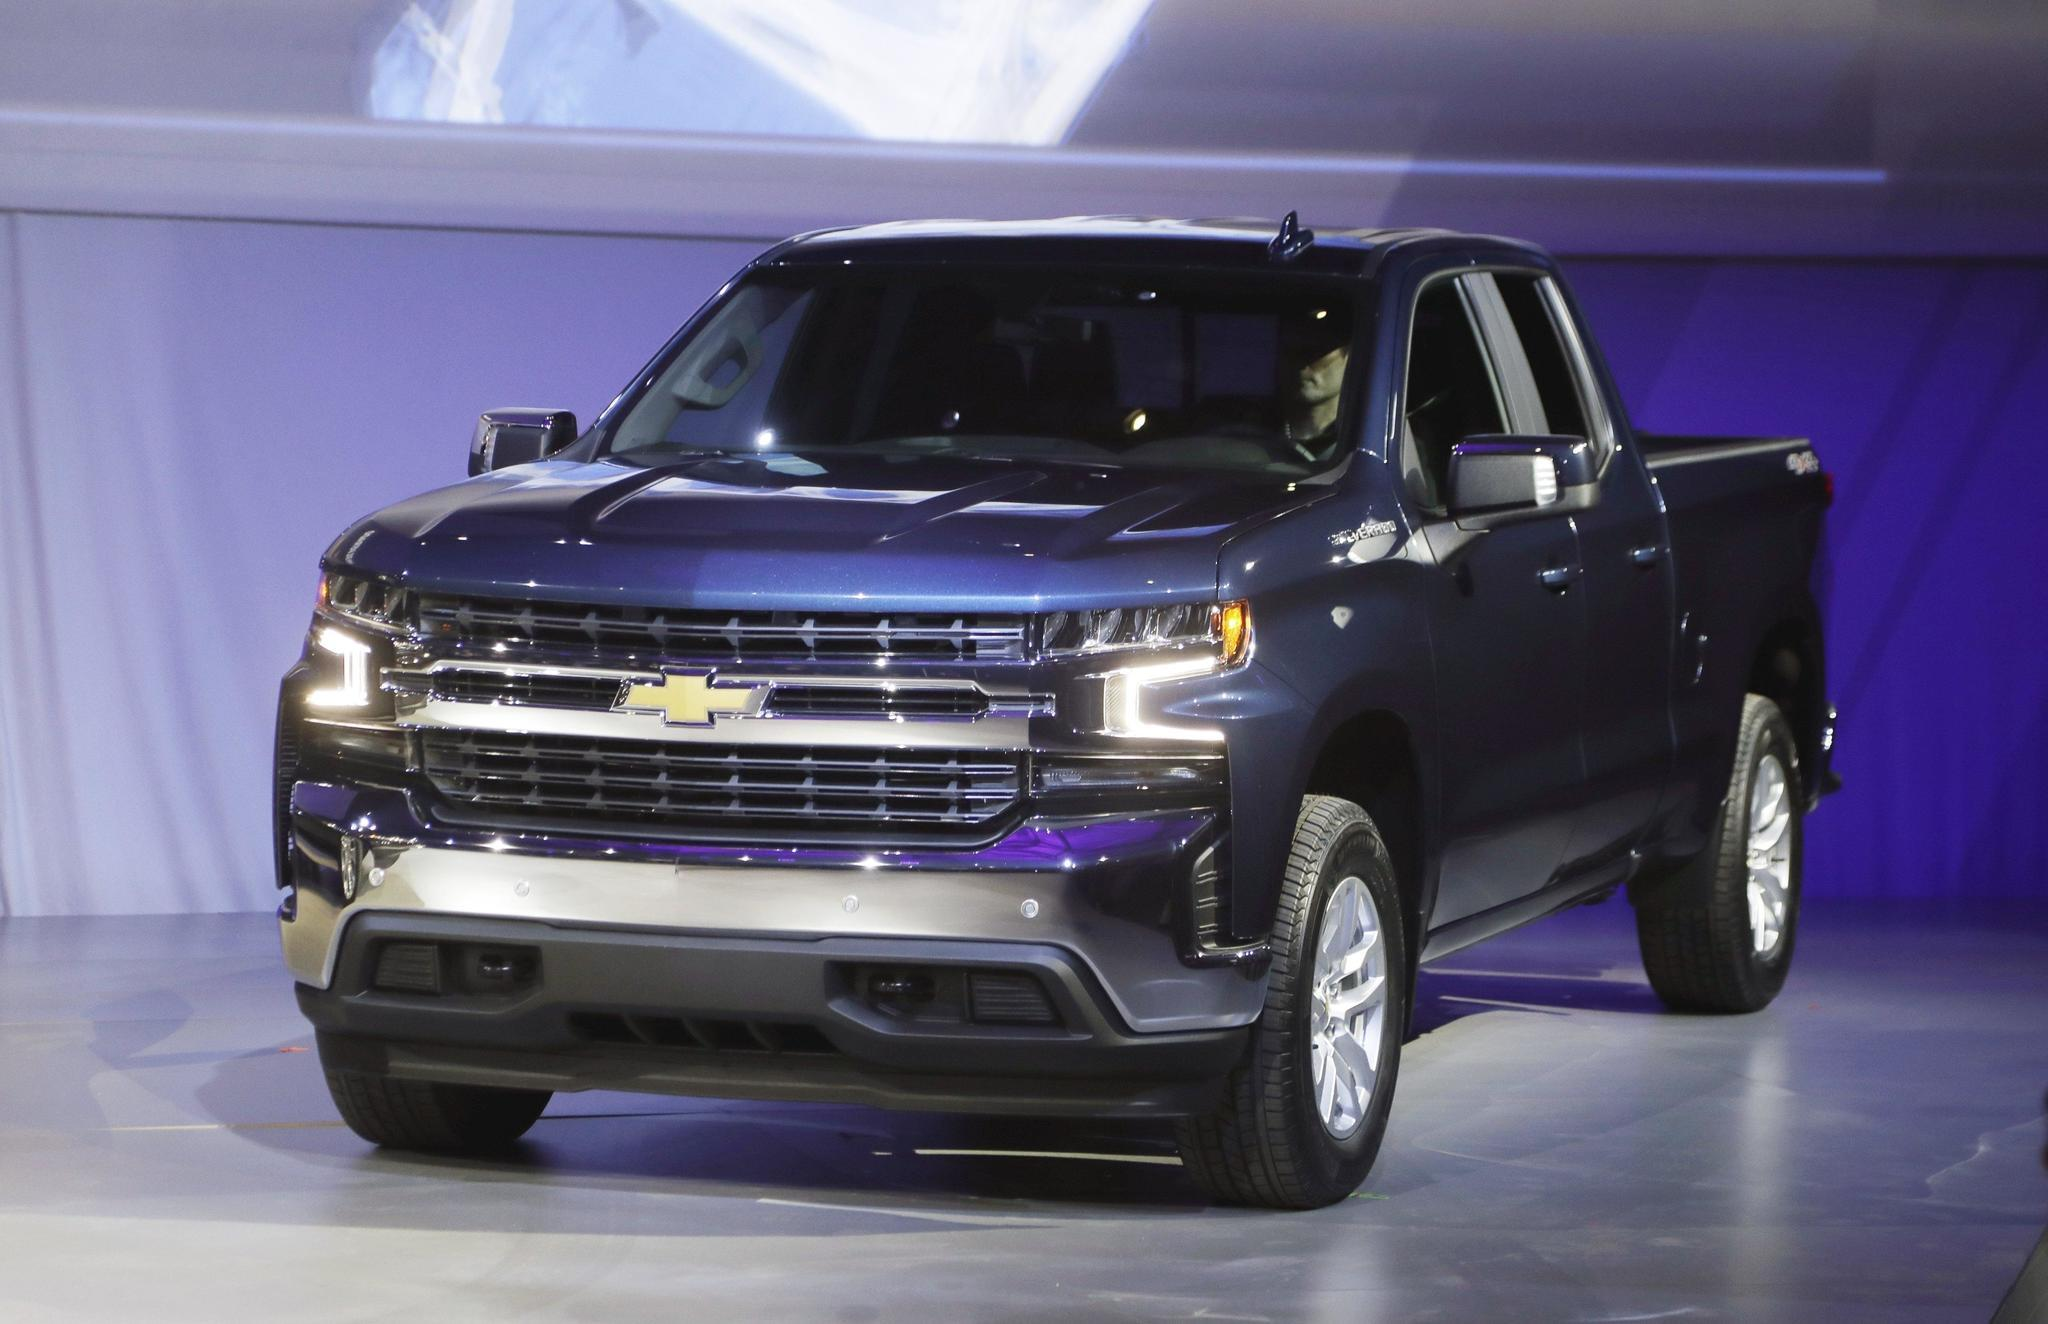 General Motors picks up market share in pickup truck war with Ford, FCA -  Chicago Tribune